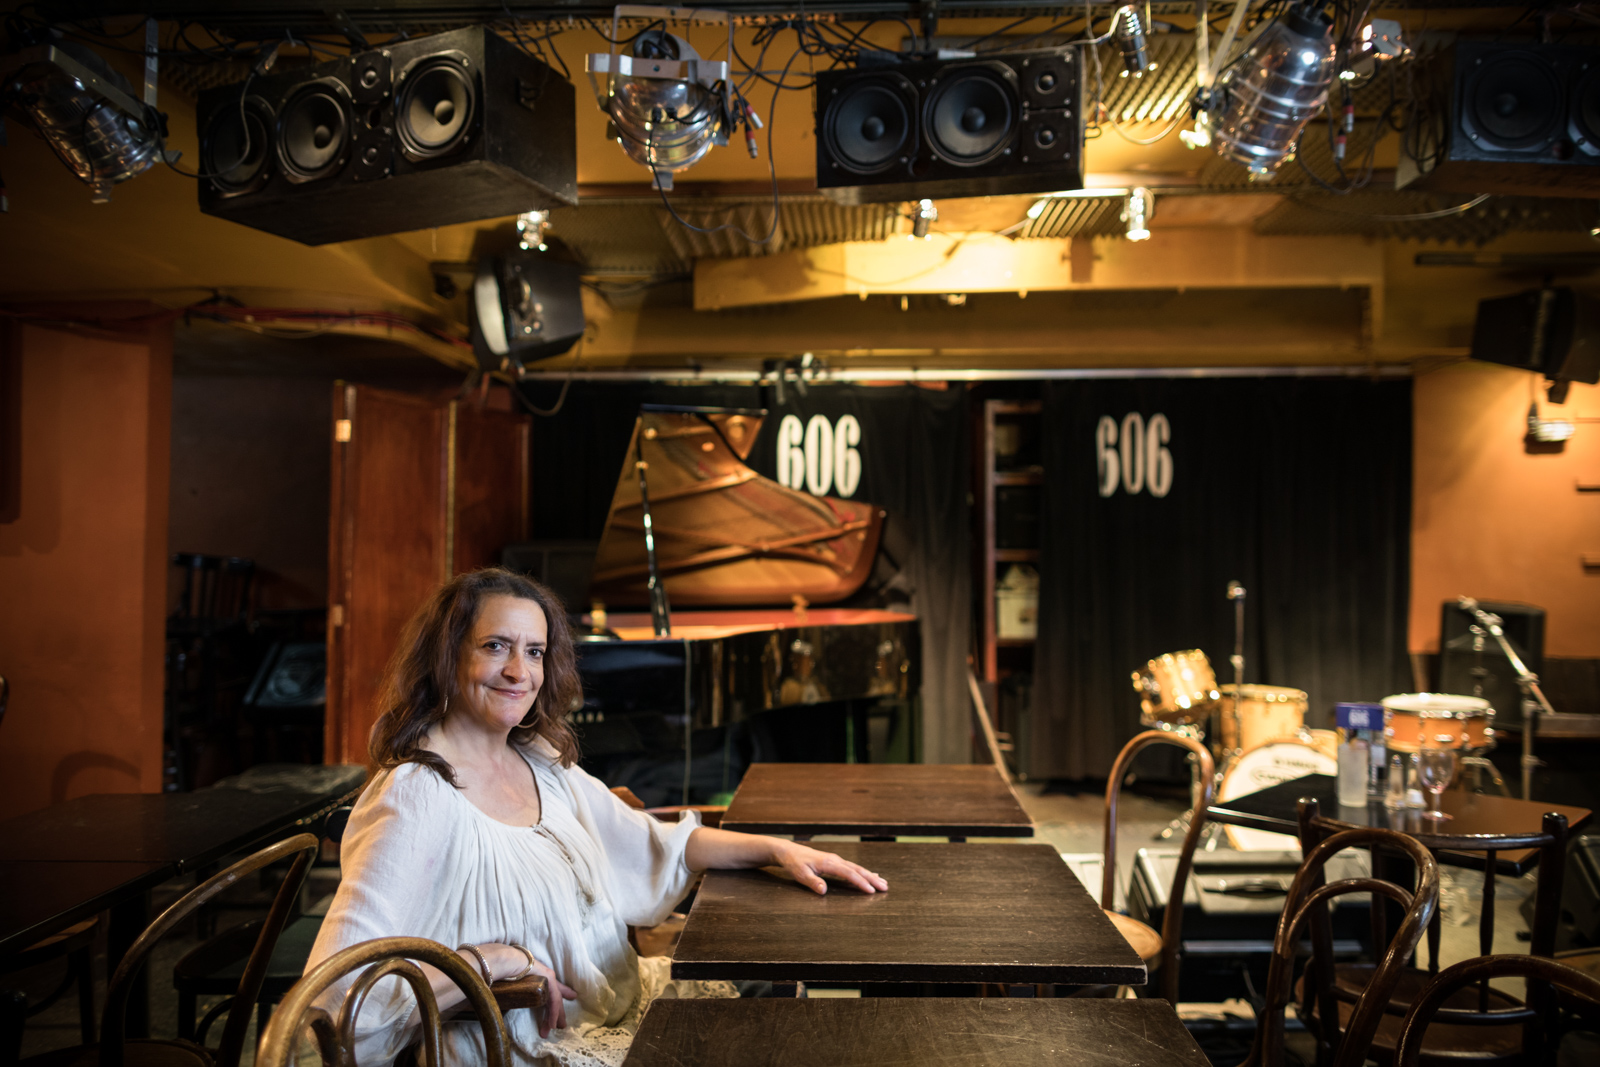 Esther has been at 606 Club in Chelsea Harbour for 30 years.